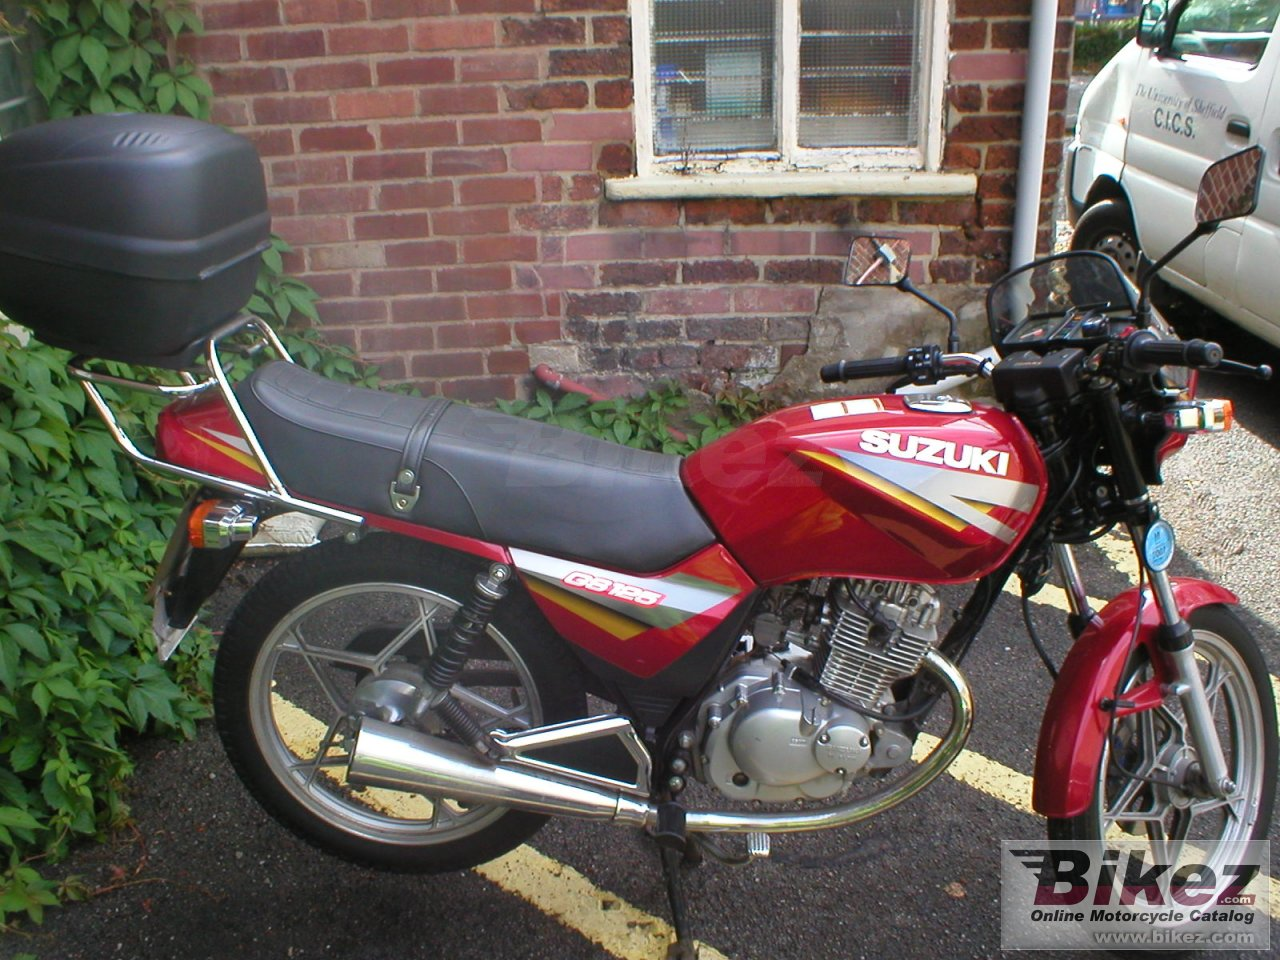 Big Conner Hodgkins gs 125 es picture and wallpaper from Bikez.com